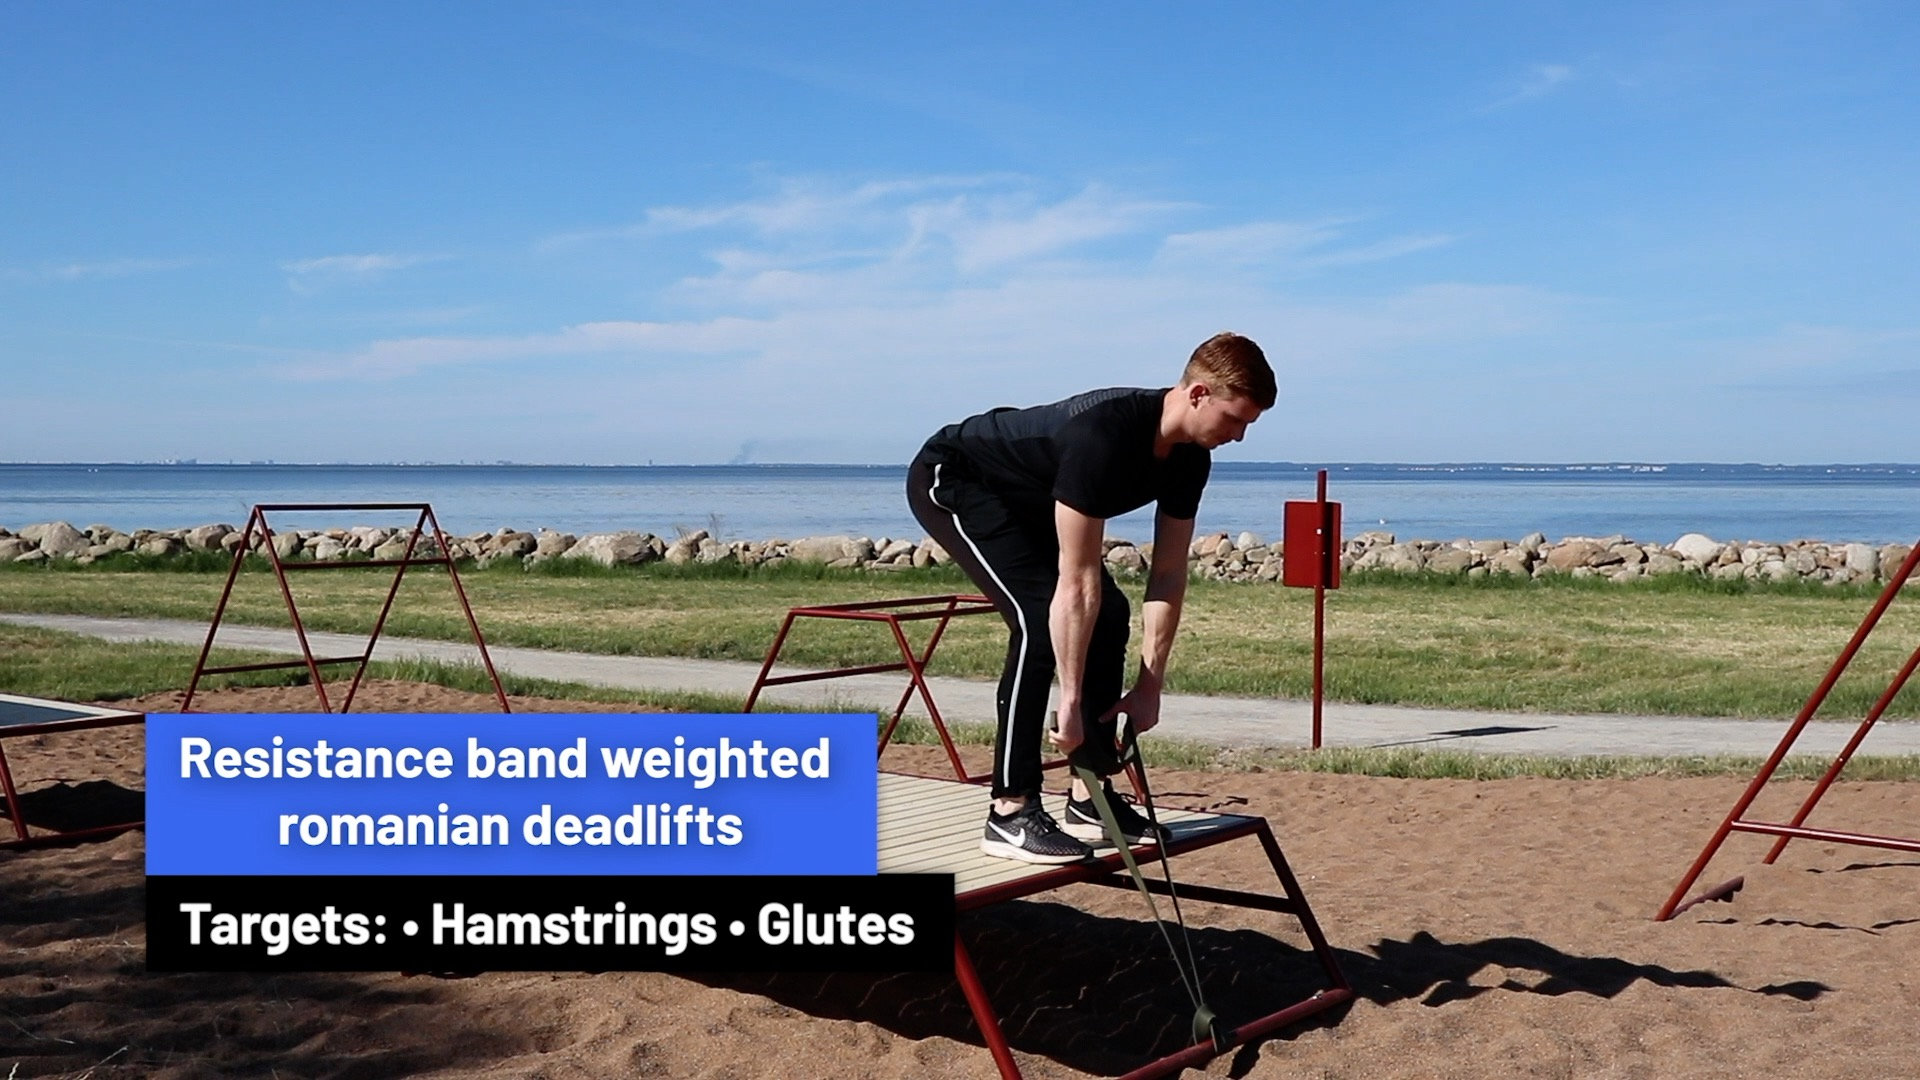 Resistance band weighted romanian deadlifts